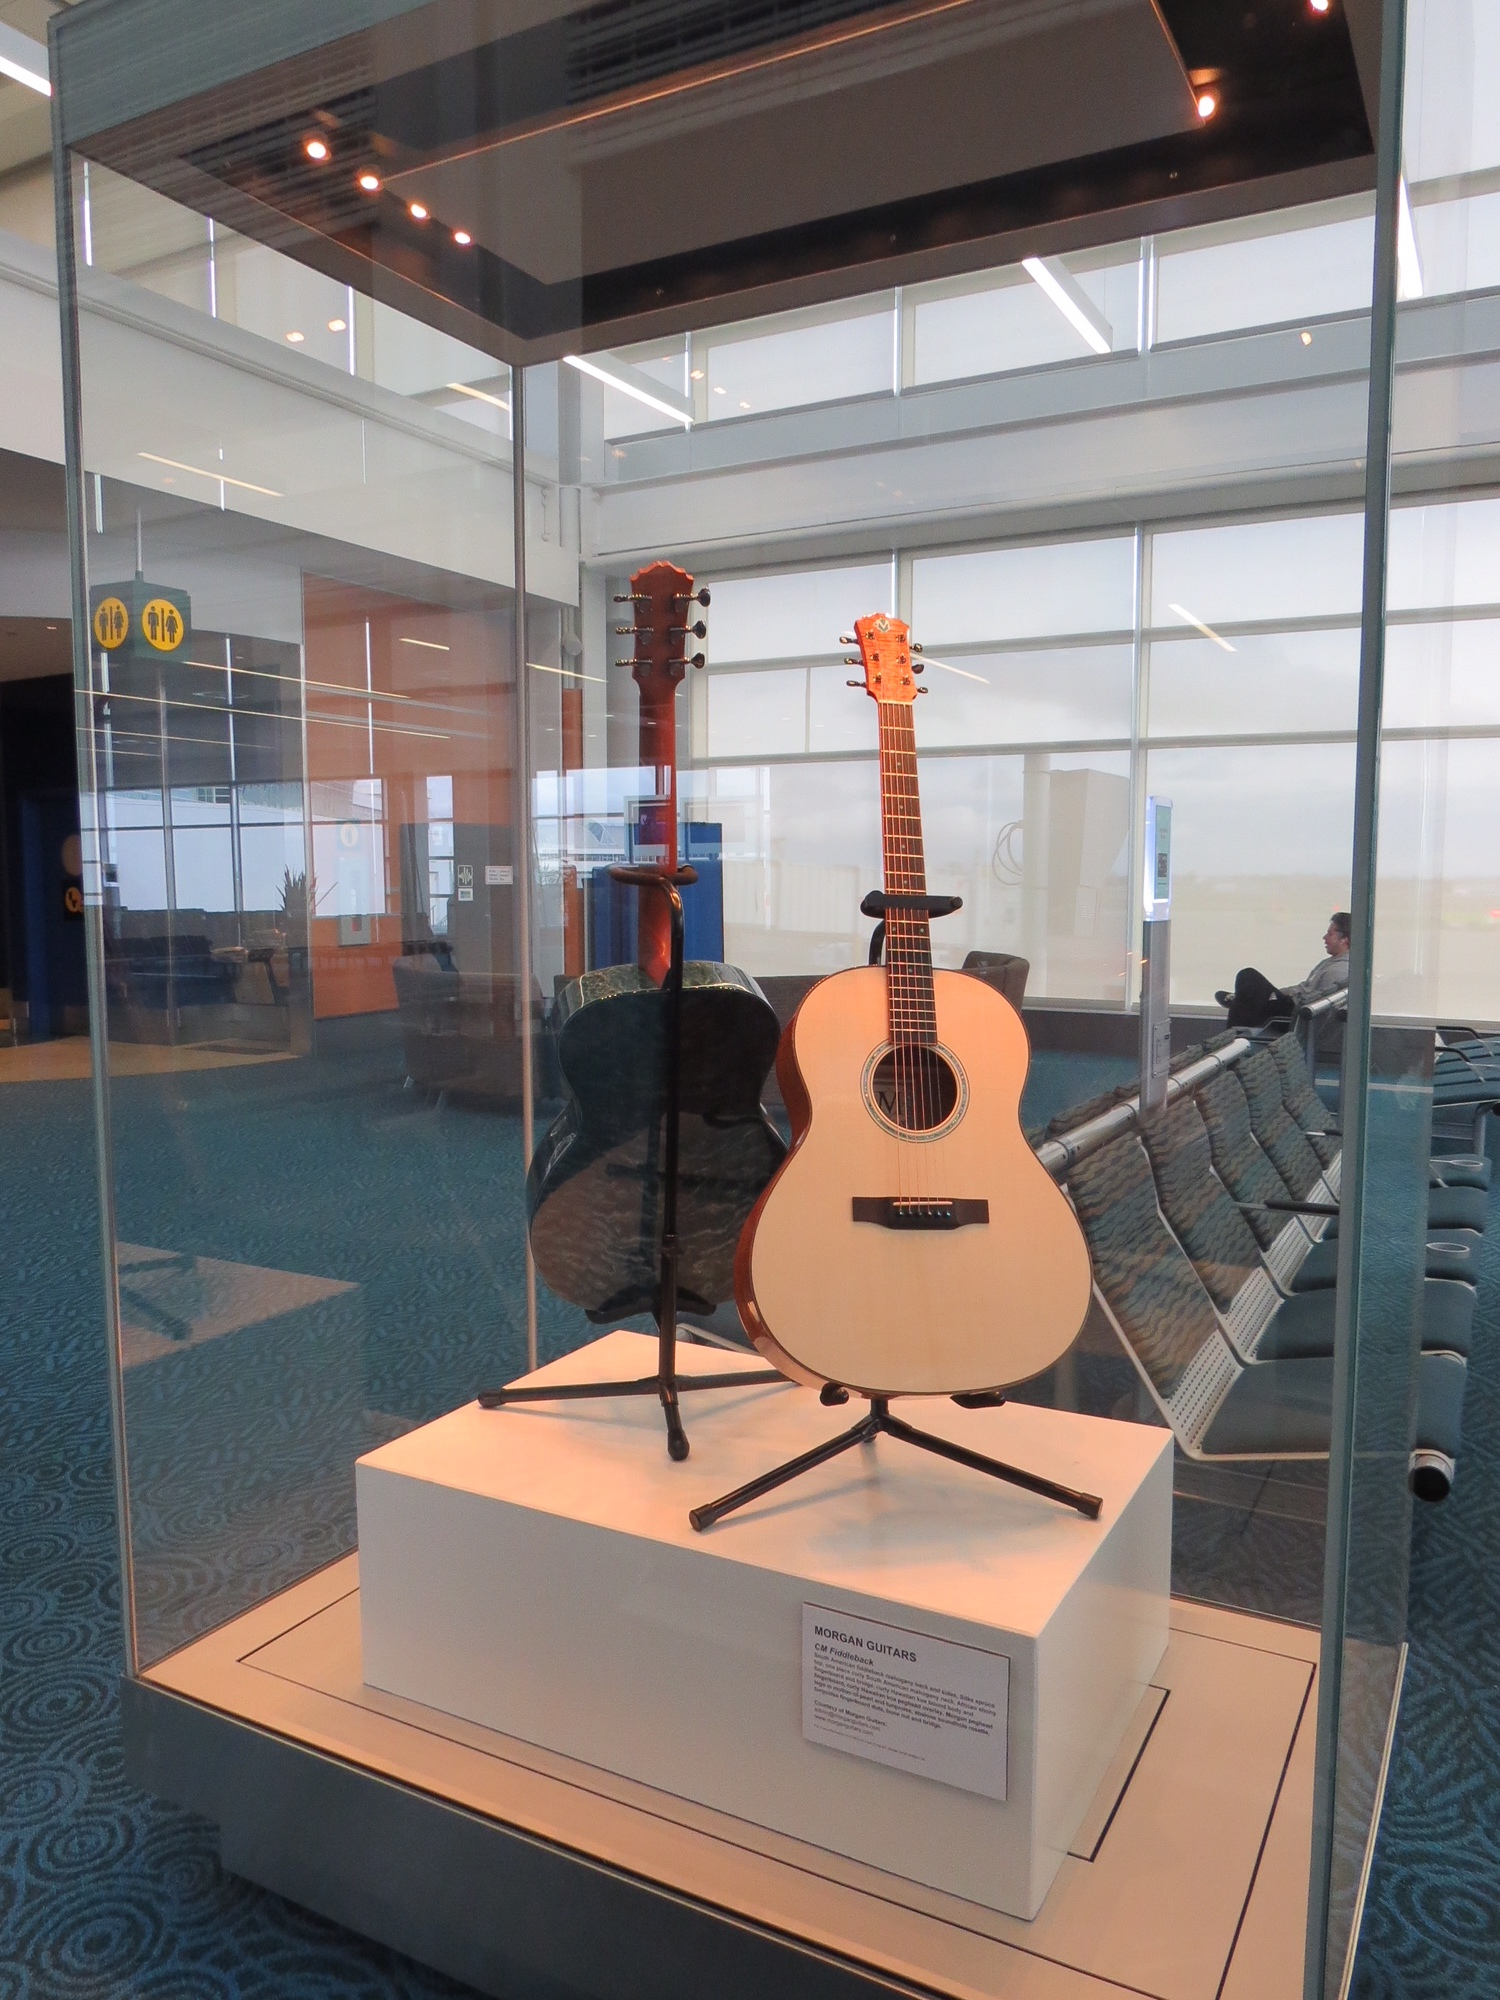 The story of Morgan Guitars is an international tale—it is only fitting that they be viewed in an international setting such as YVR.